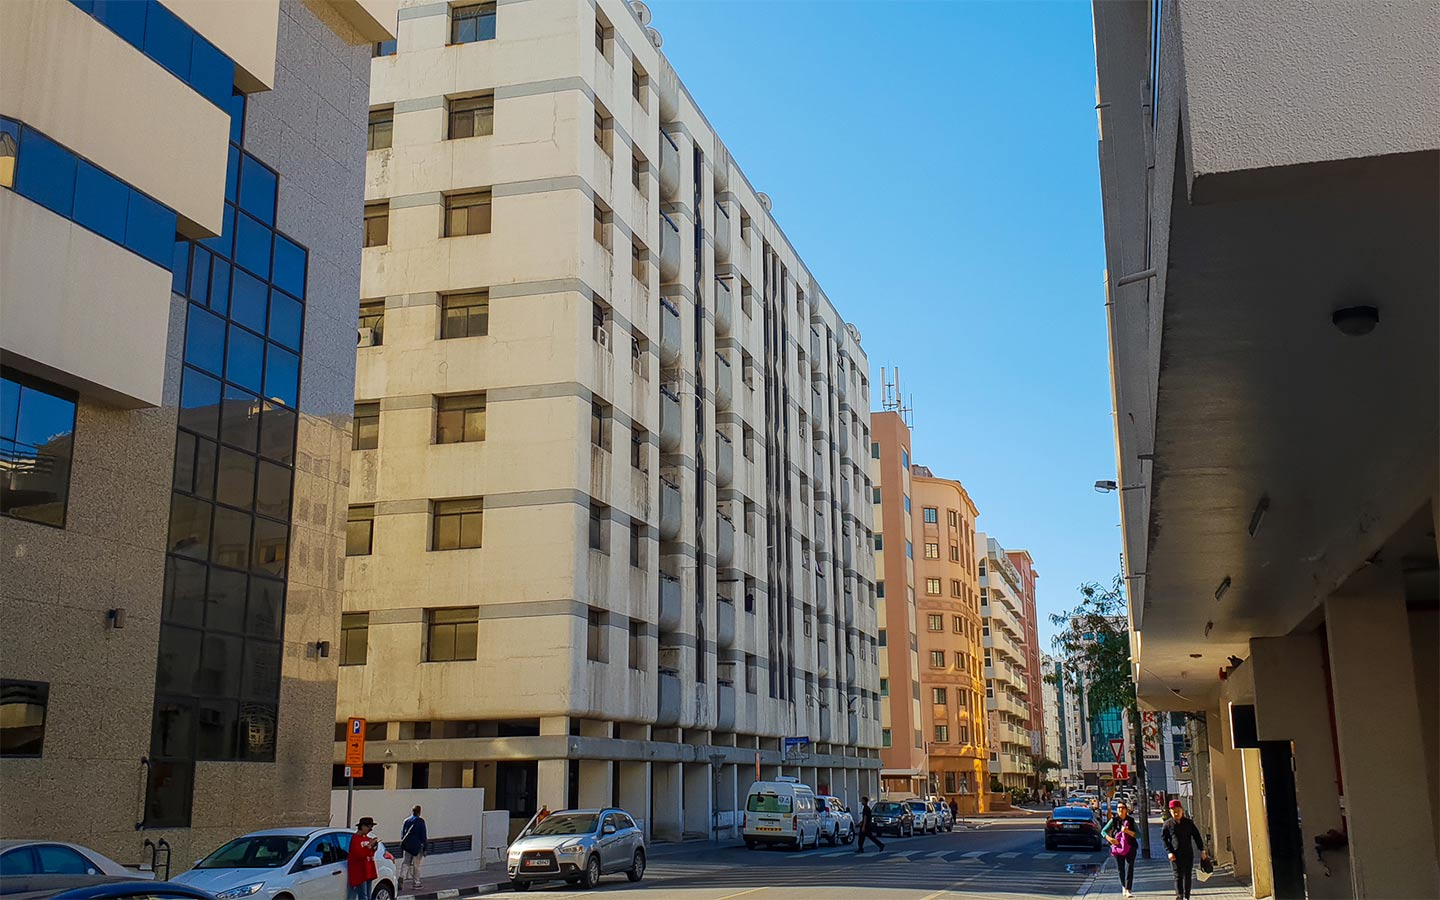 View of the streets and flats for rent in Al Rigga